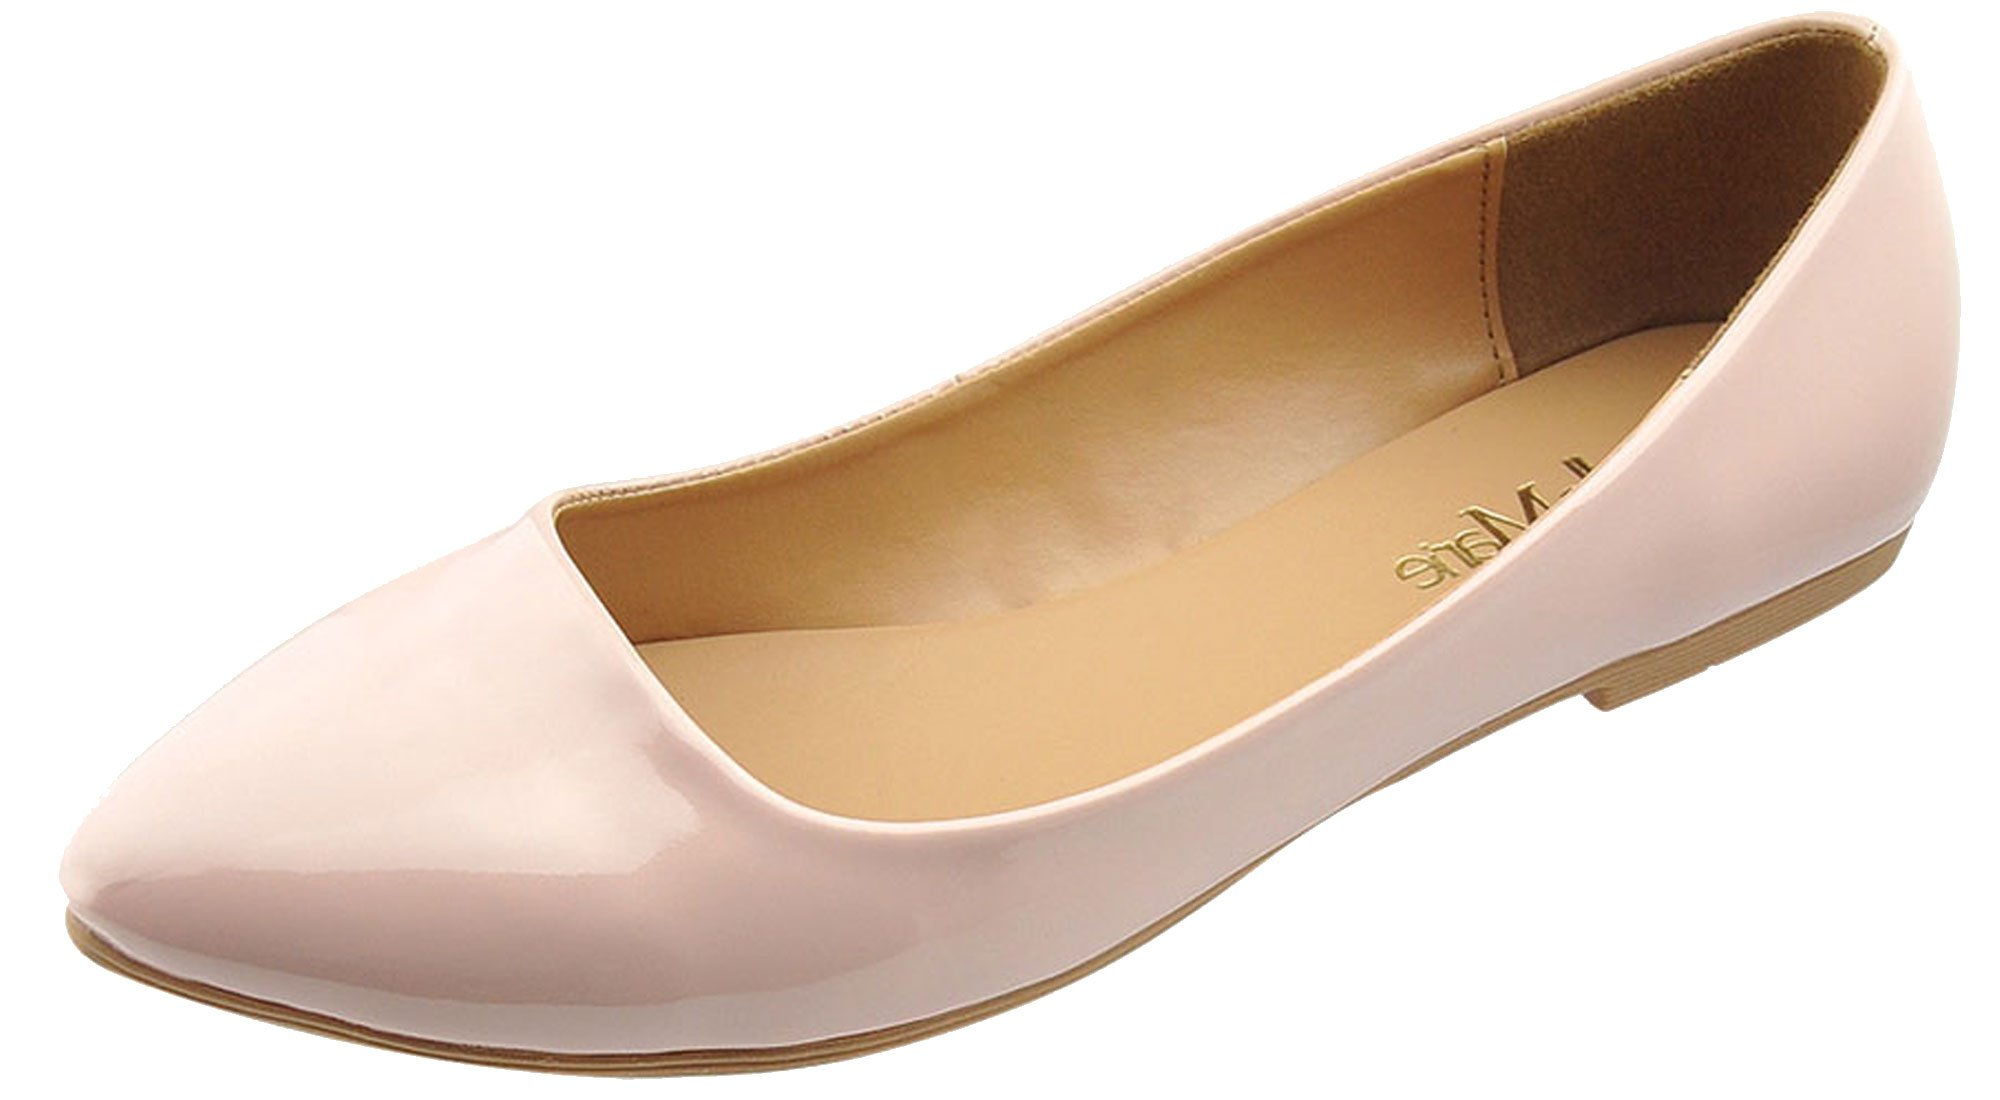 Bella Marie Womens Pointy Toe Slip On Classic Ballet Flat Flats-Shoes,7 B(M) US,Rose Pink